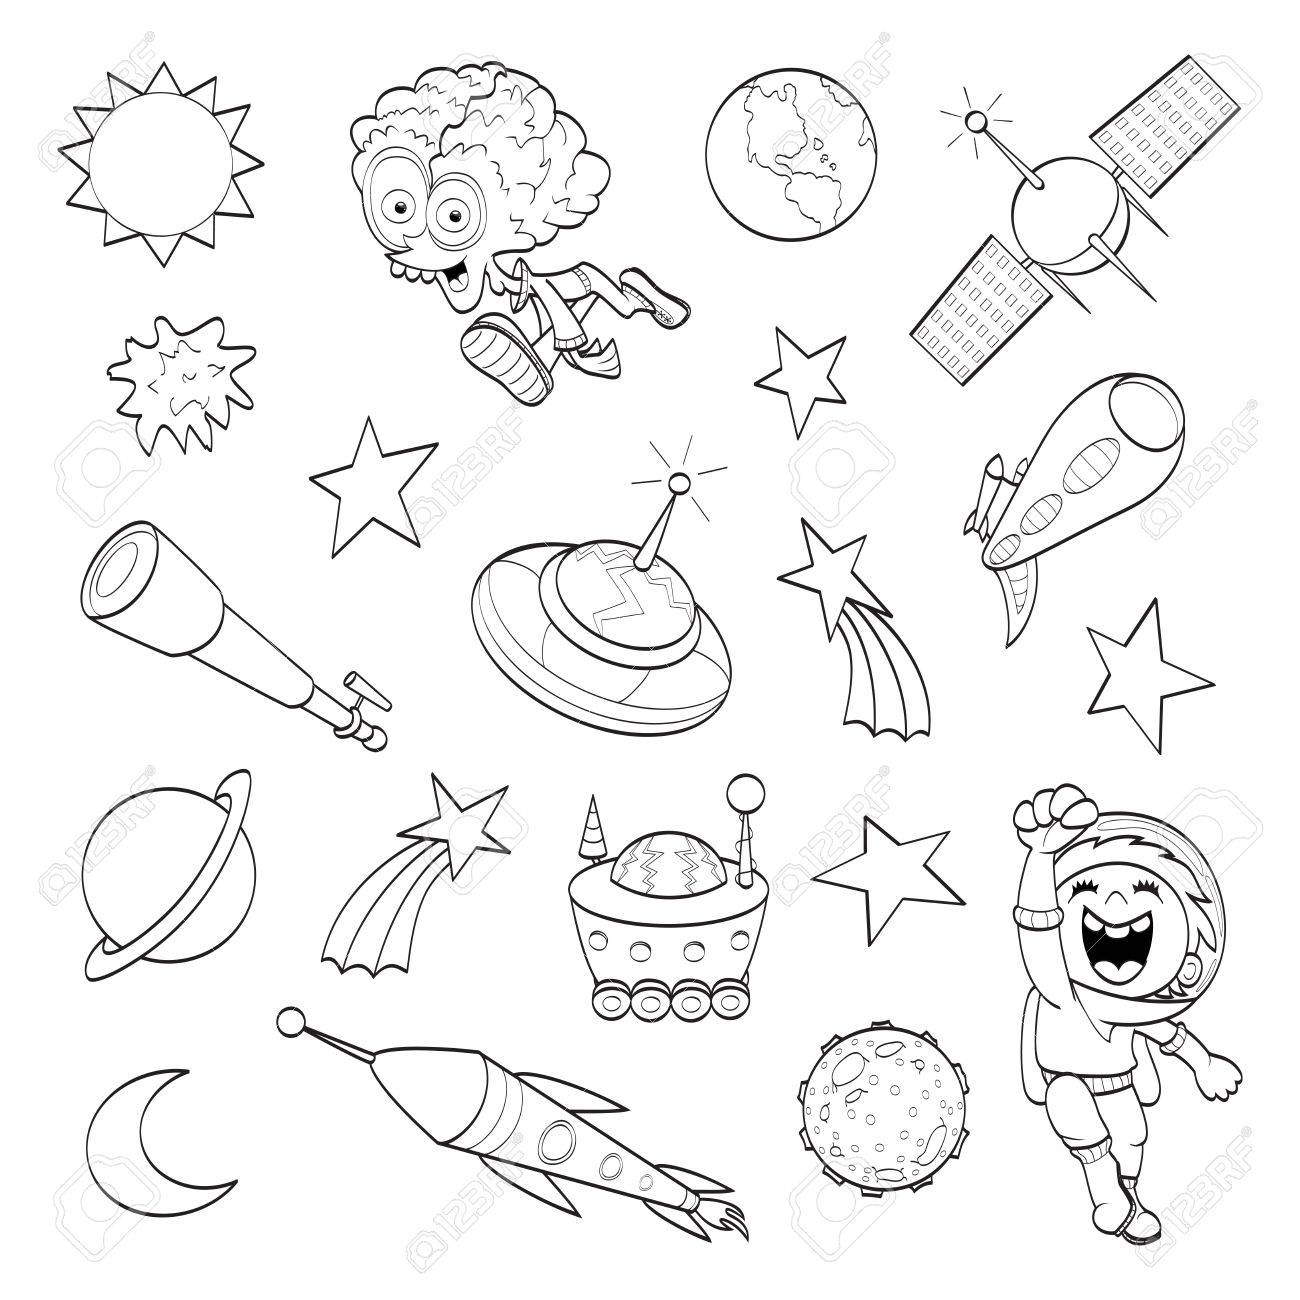 cartoon outer space set coloring book royalty free cliparts